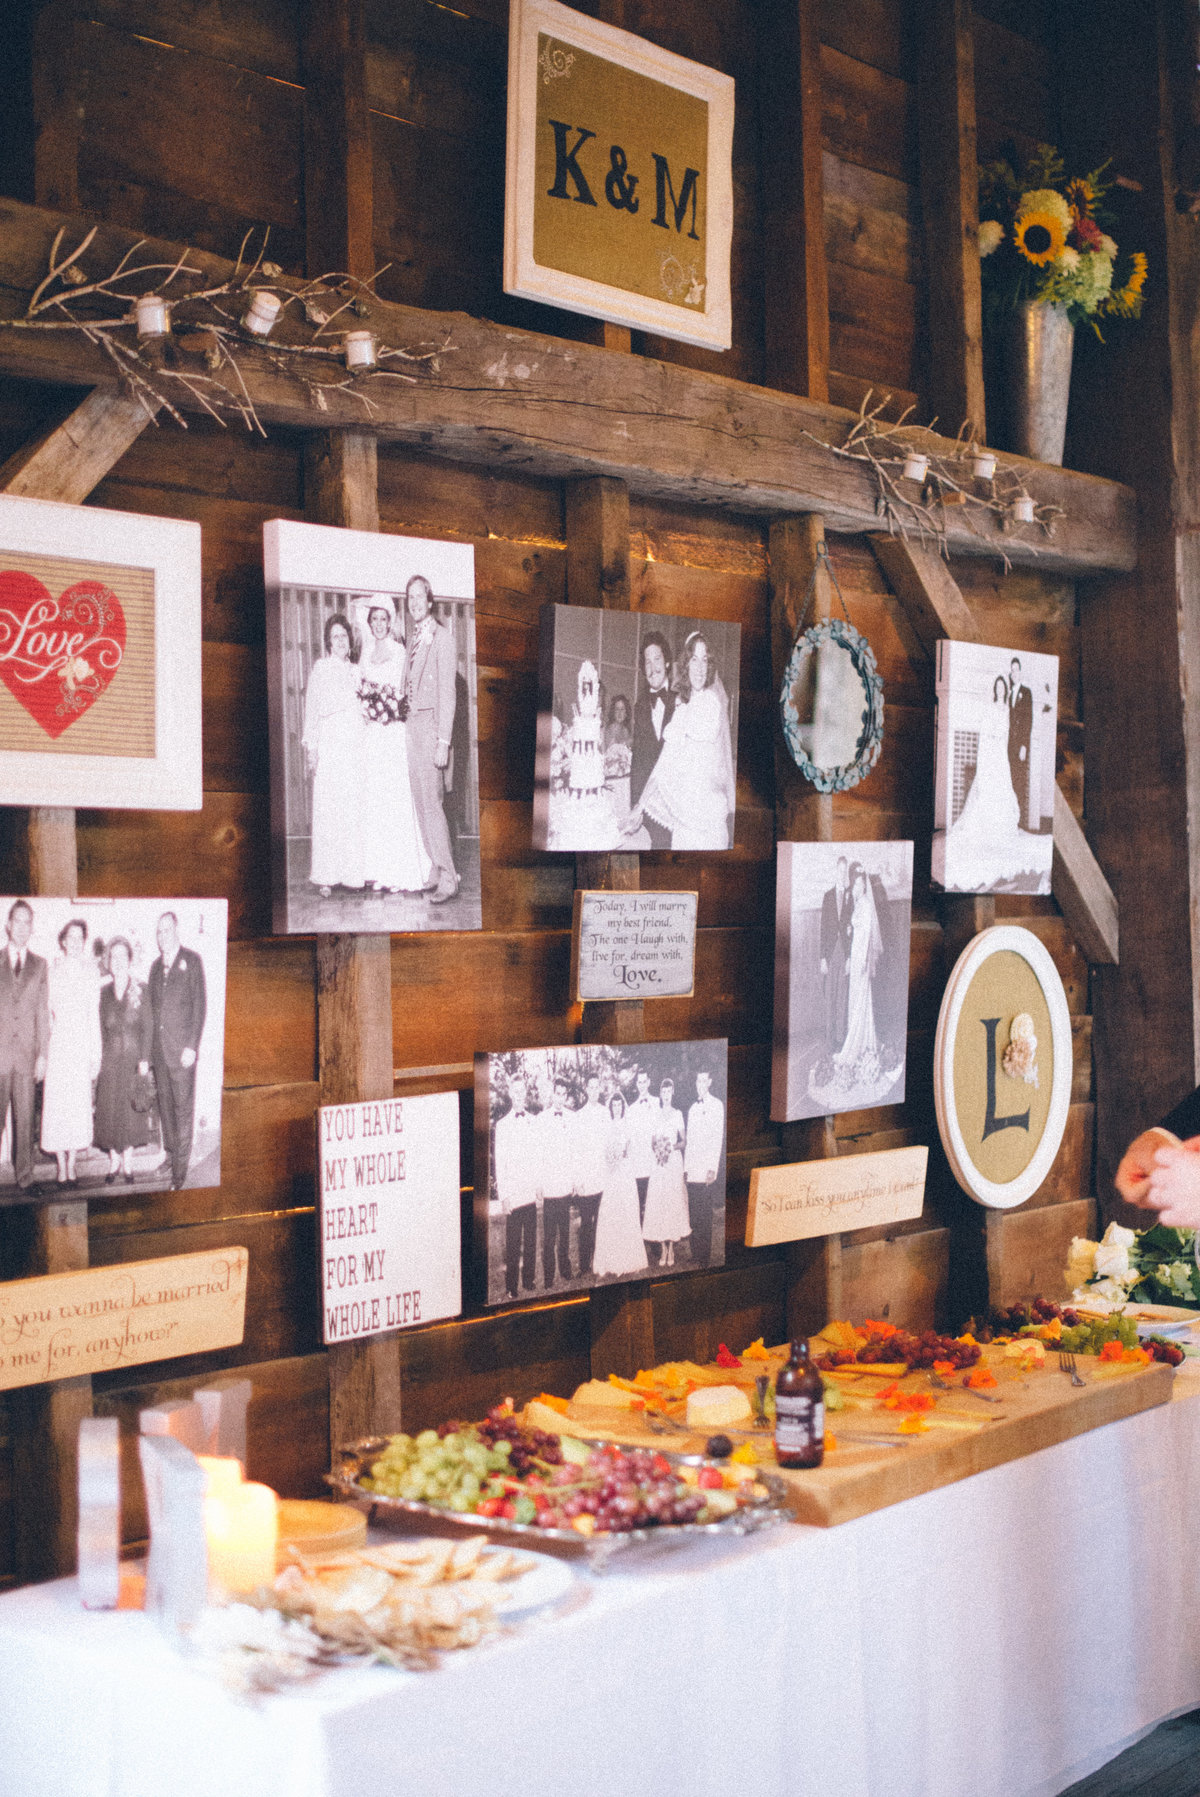 monica_relyea_events_stripling_photography_rustic_barn_glam_wedding_27